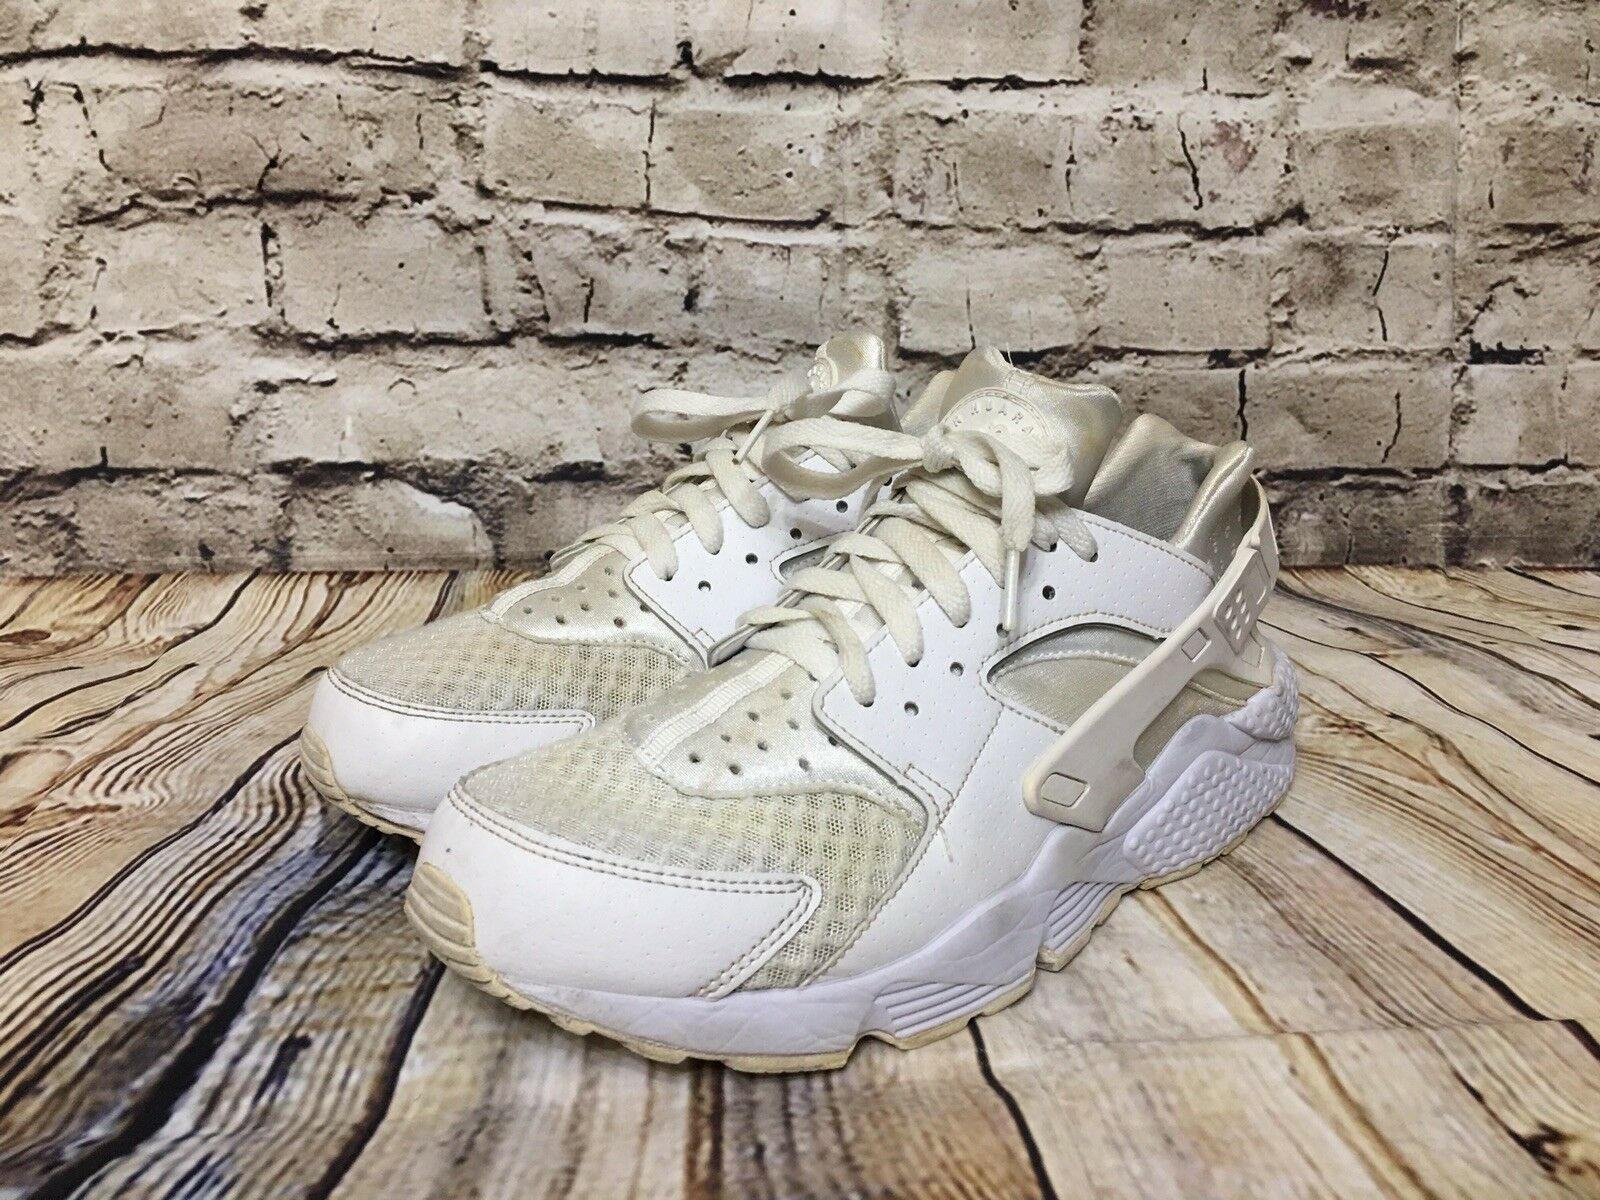 c714939bb7d Nike Air Huarache All White Pure Platinum Run 318429-111 Triple White Size  9.5. Nike Air Jordan 1 Retro ...